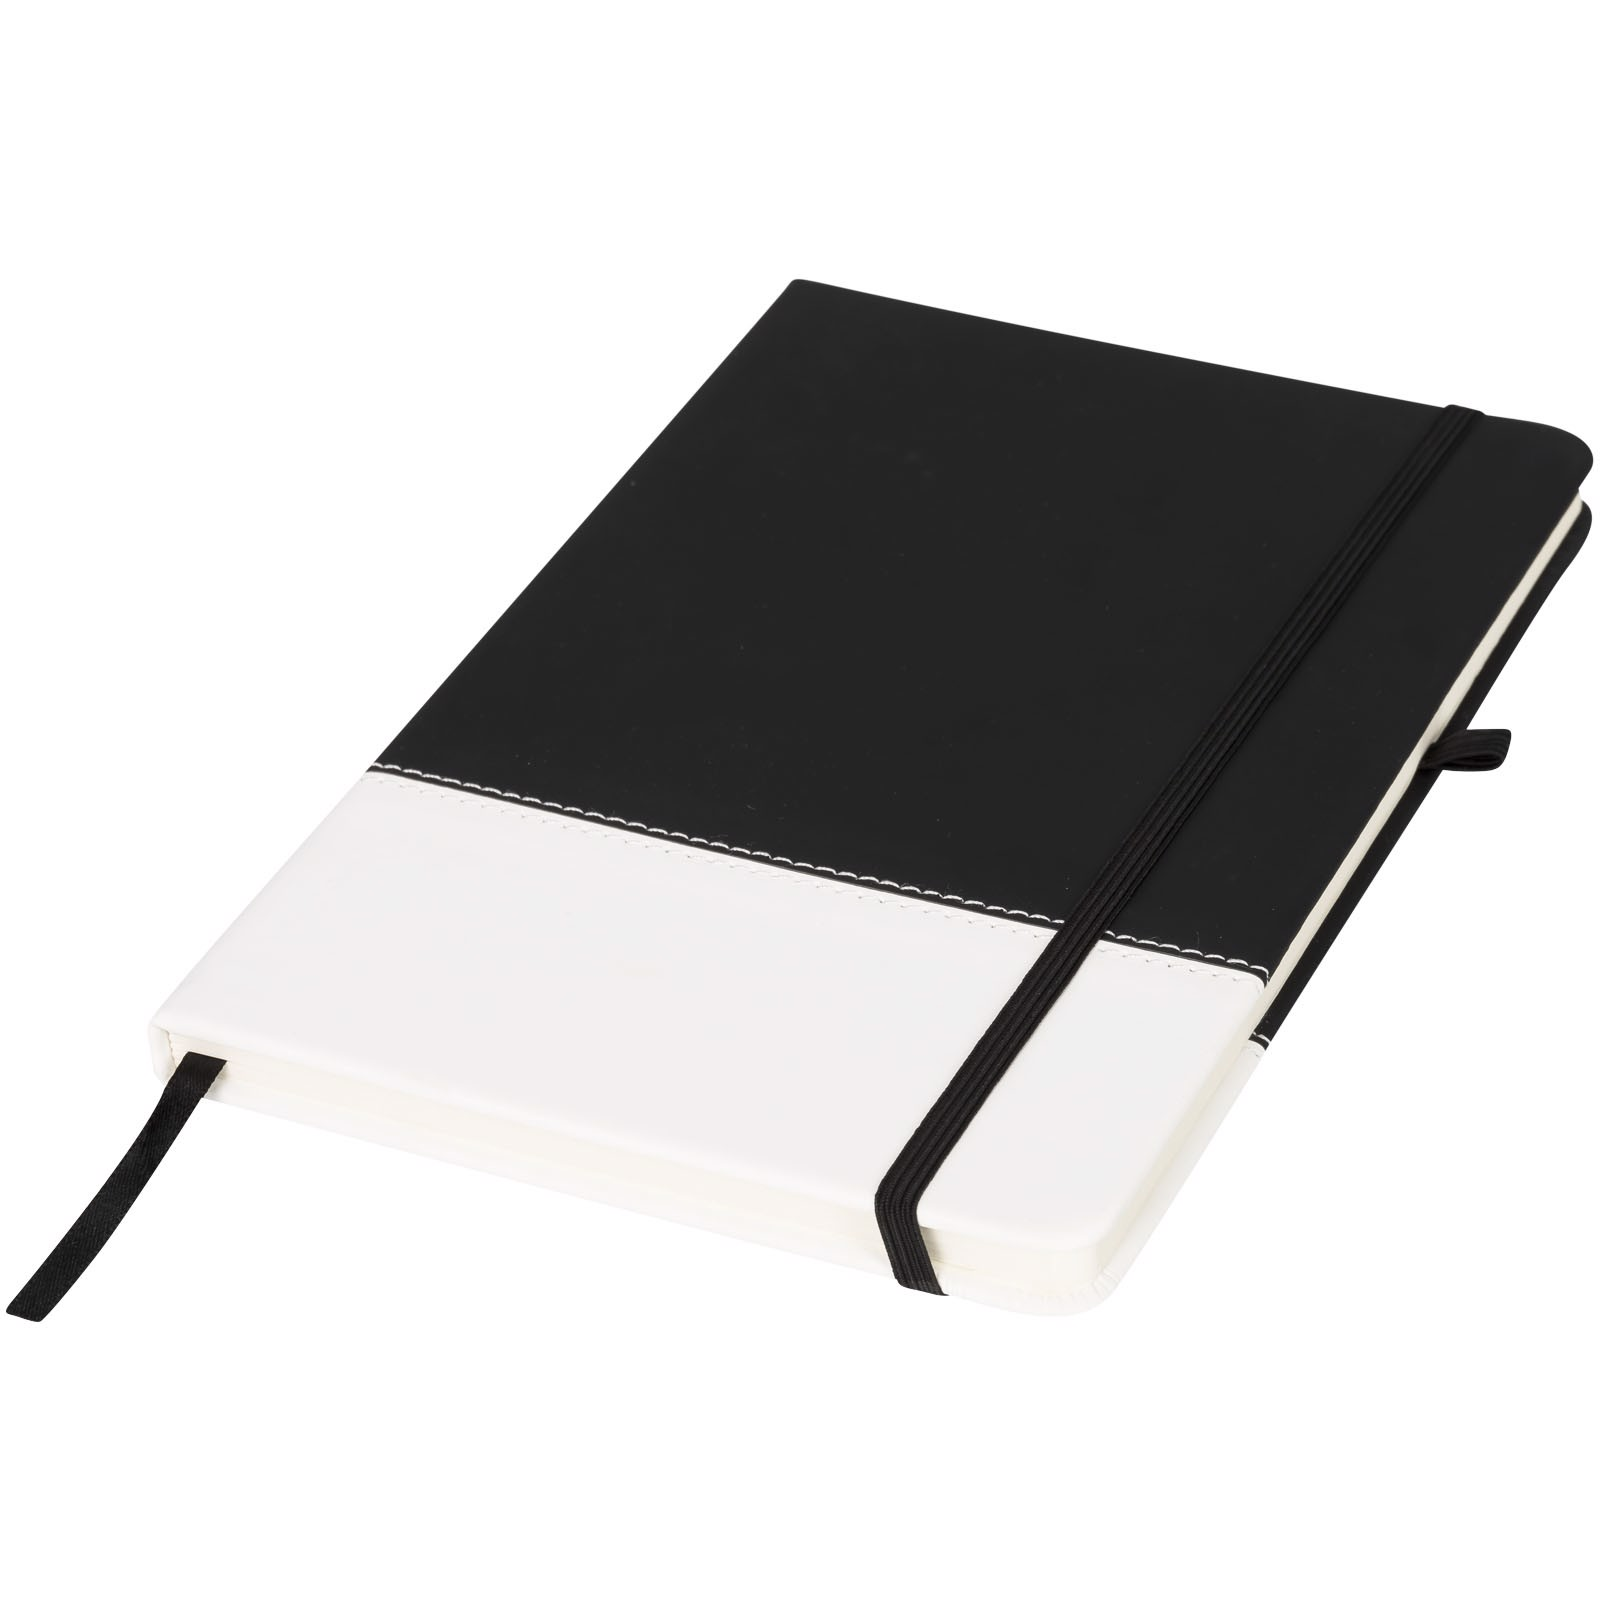 Two-tone A5 colour block notebook - Solid black